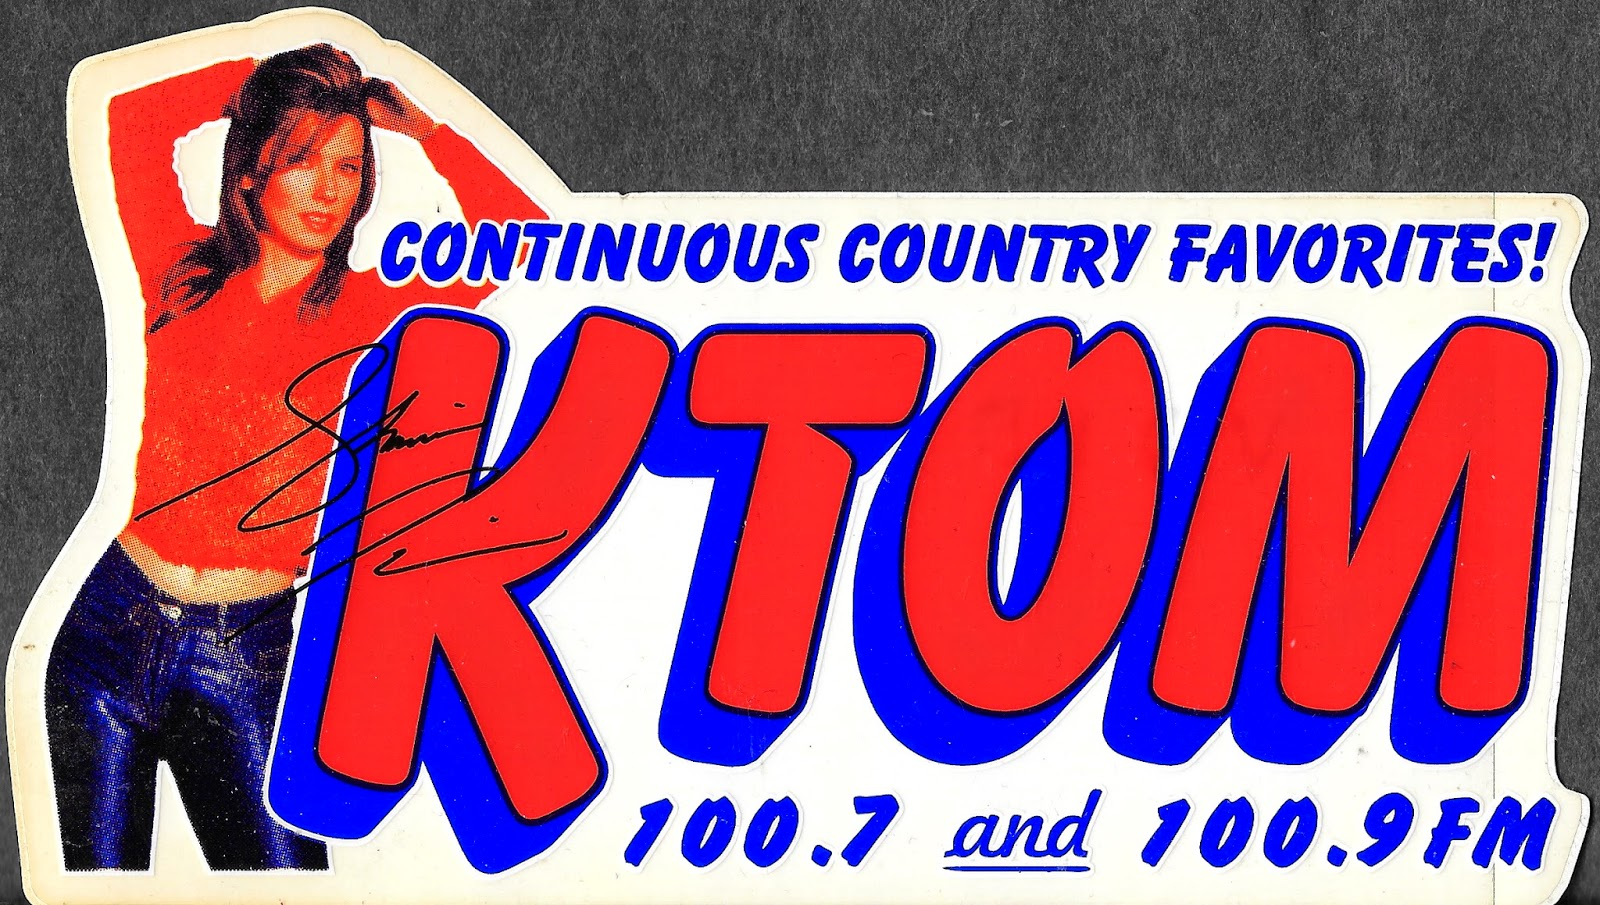 Shania is featured on two radio stickers in the collection. This one